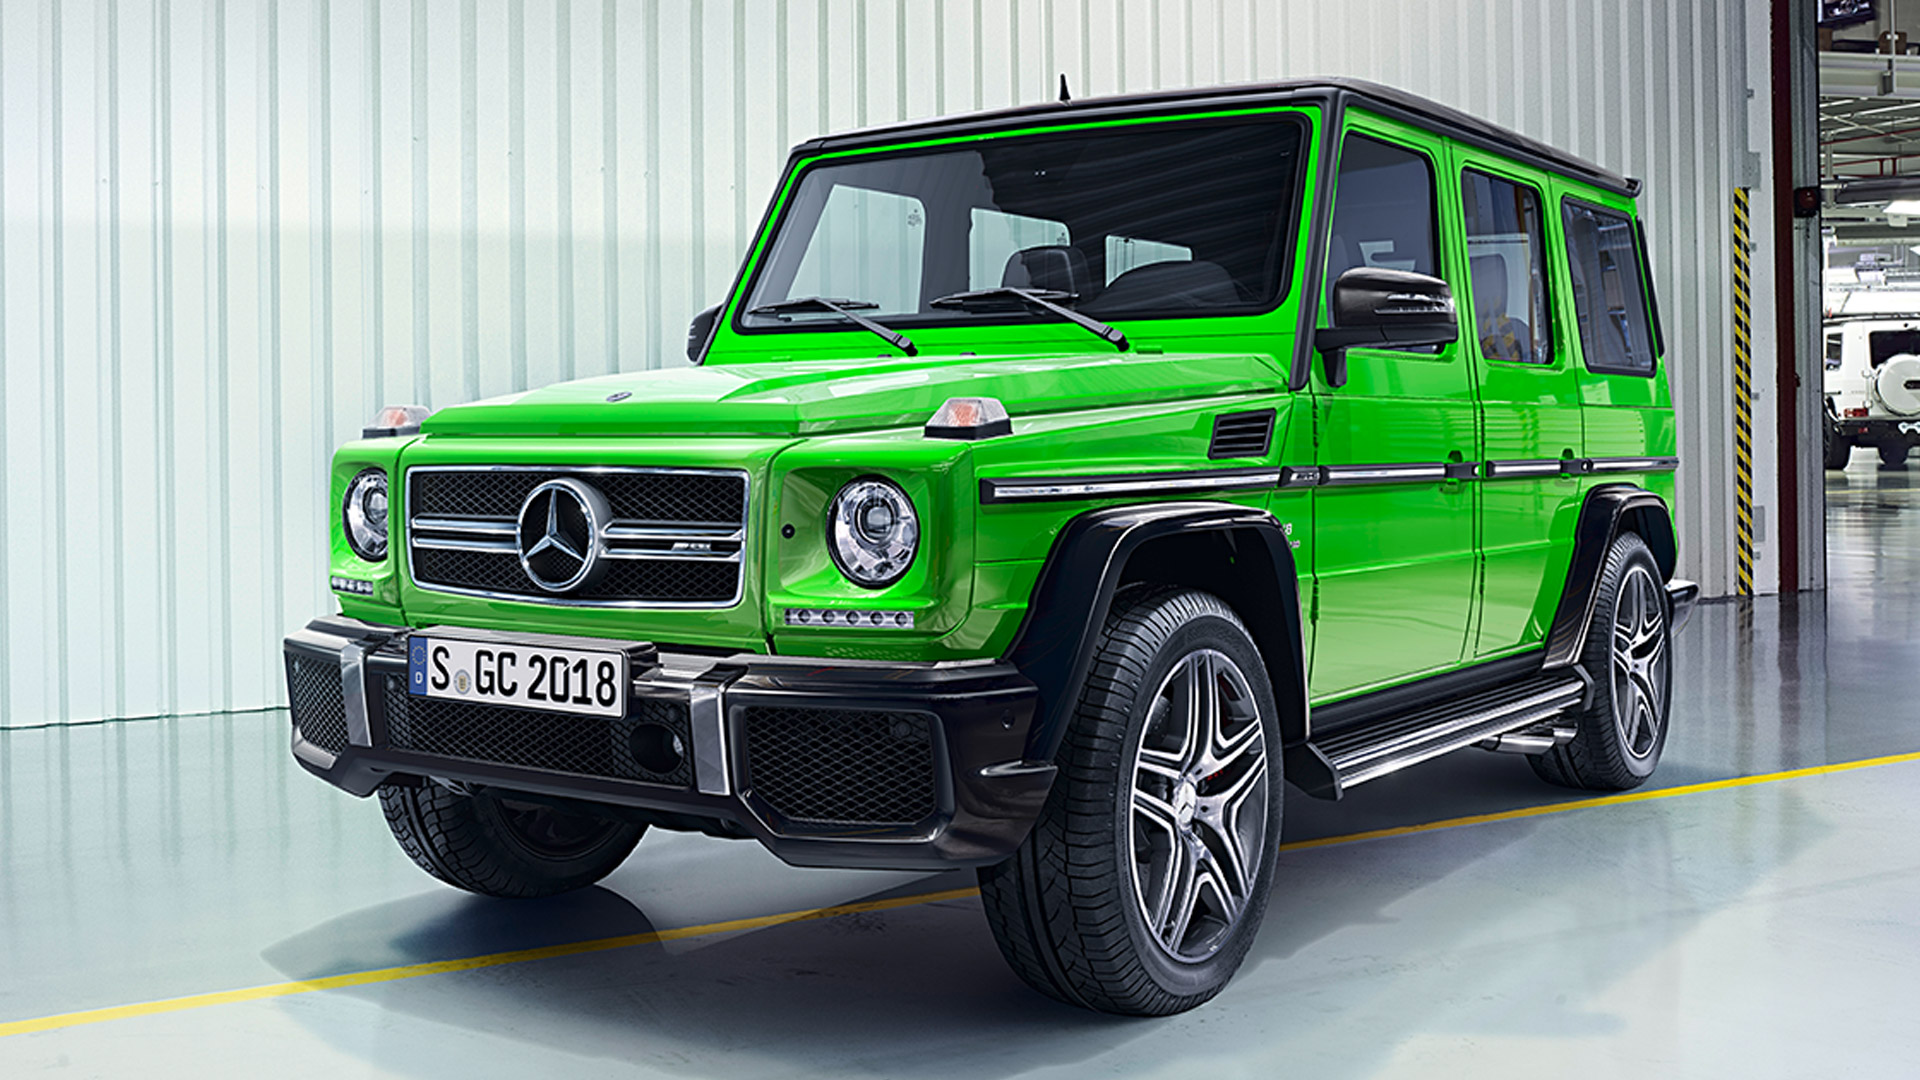 mercedes-benz g-class 2016 g 500 - price, mileage, reviews